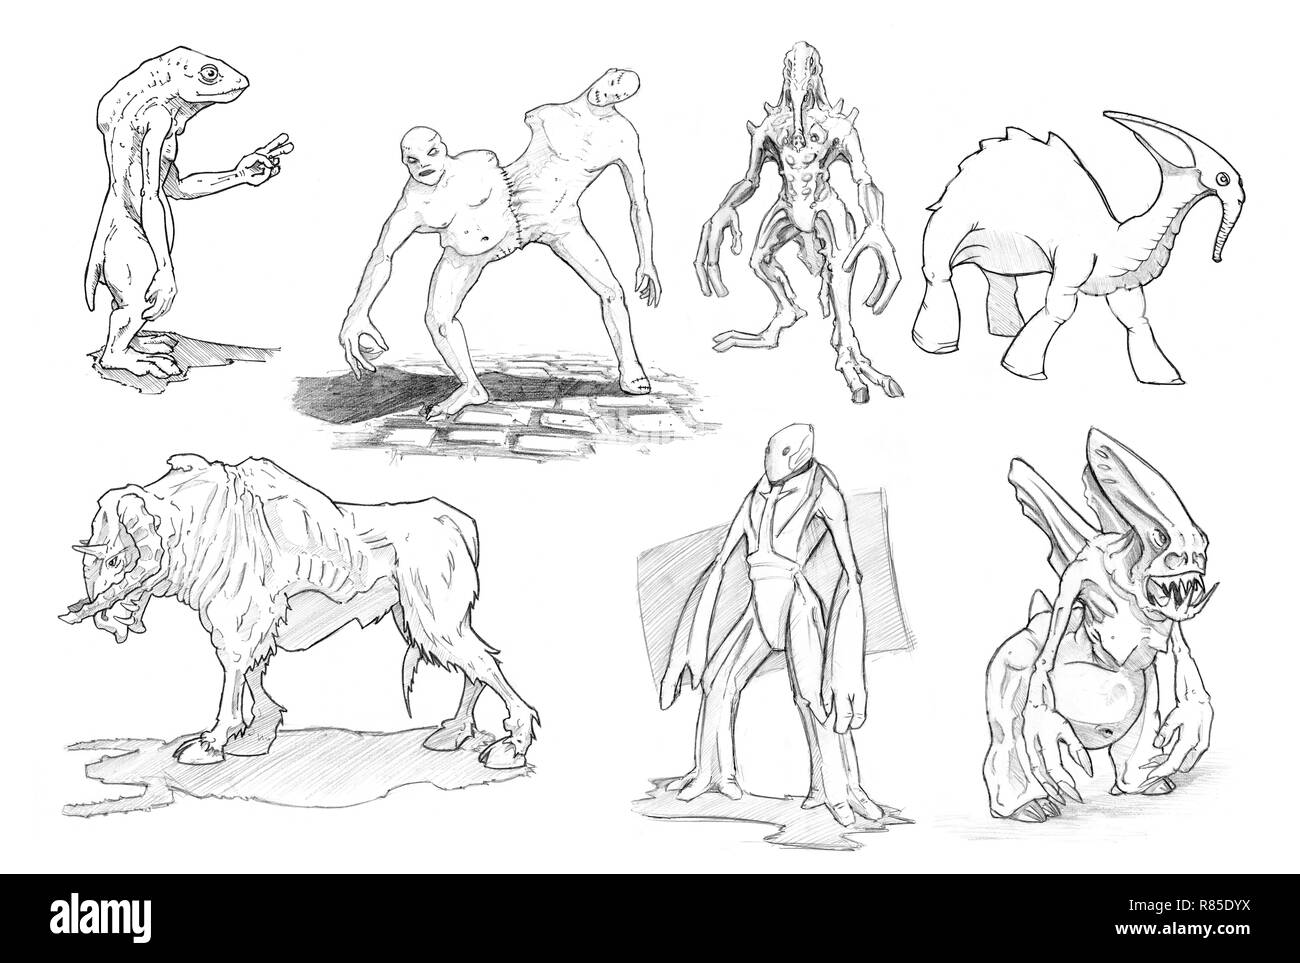 Set of Pencil or Ink Drawings of Various Fantasy or Sci-fi Monsters - Stock Image